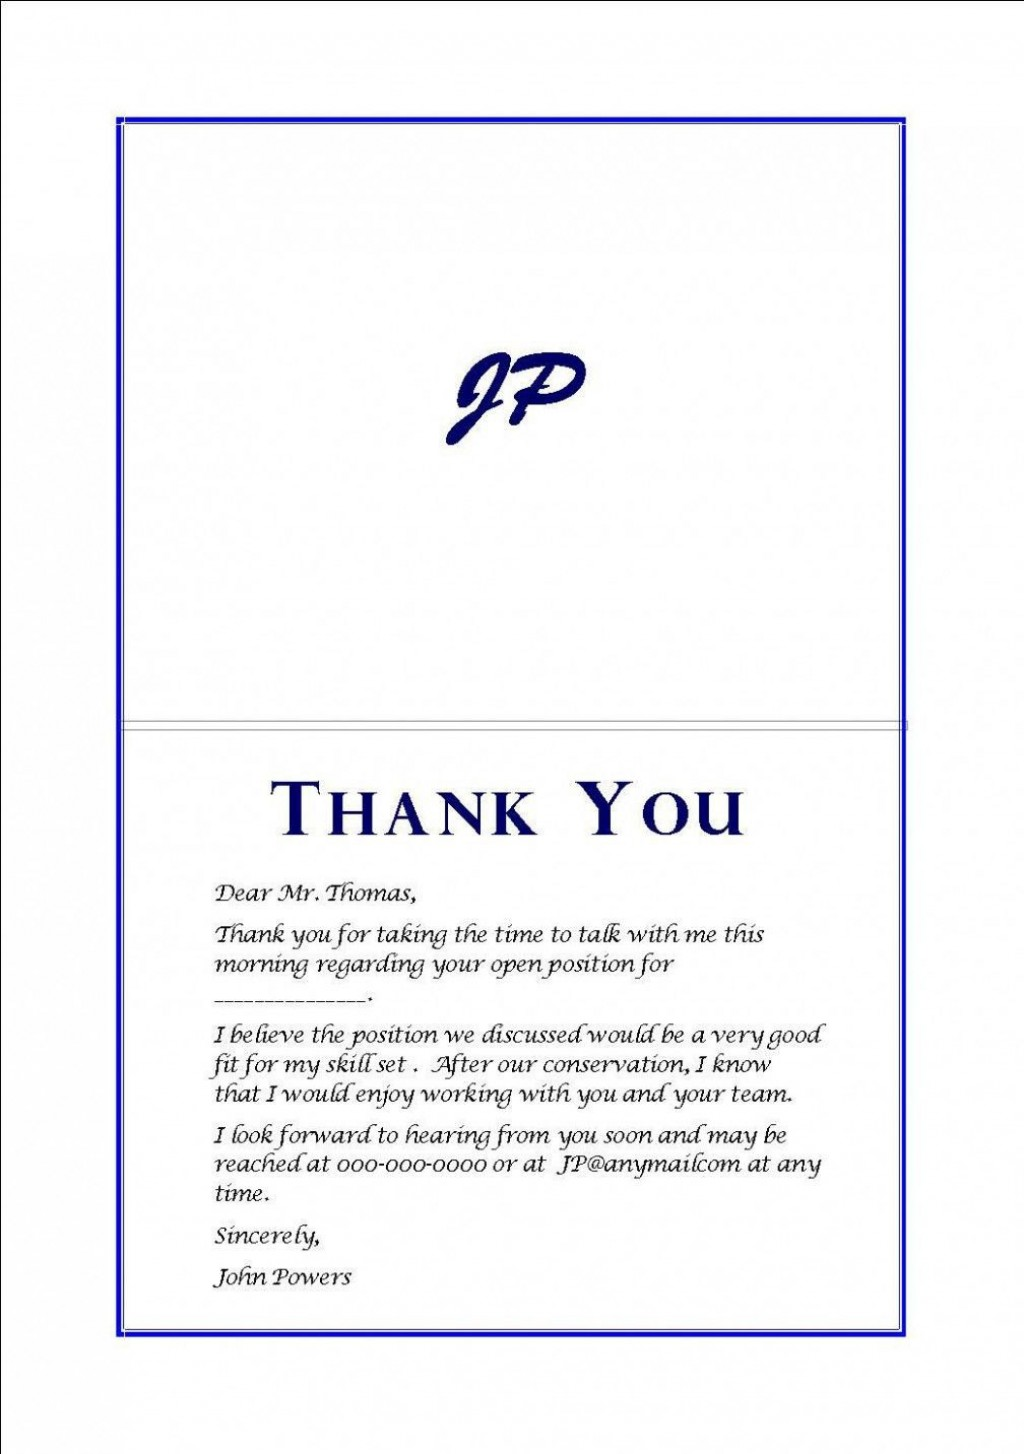 000 Imposing Thank You Note Template After Phone Interview Sample  Letter ExampleLarge